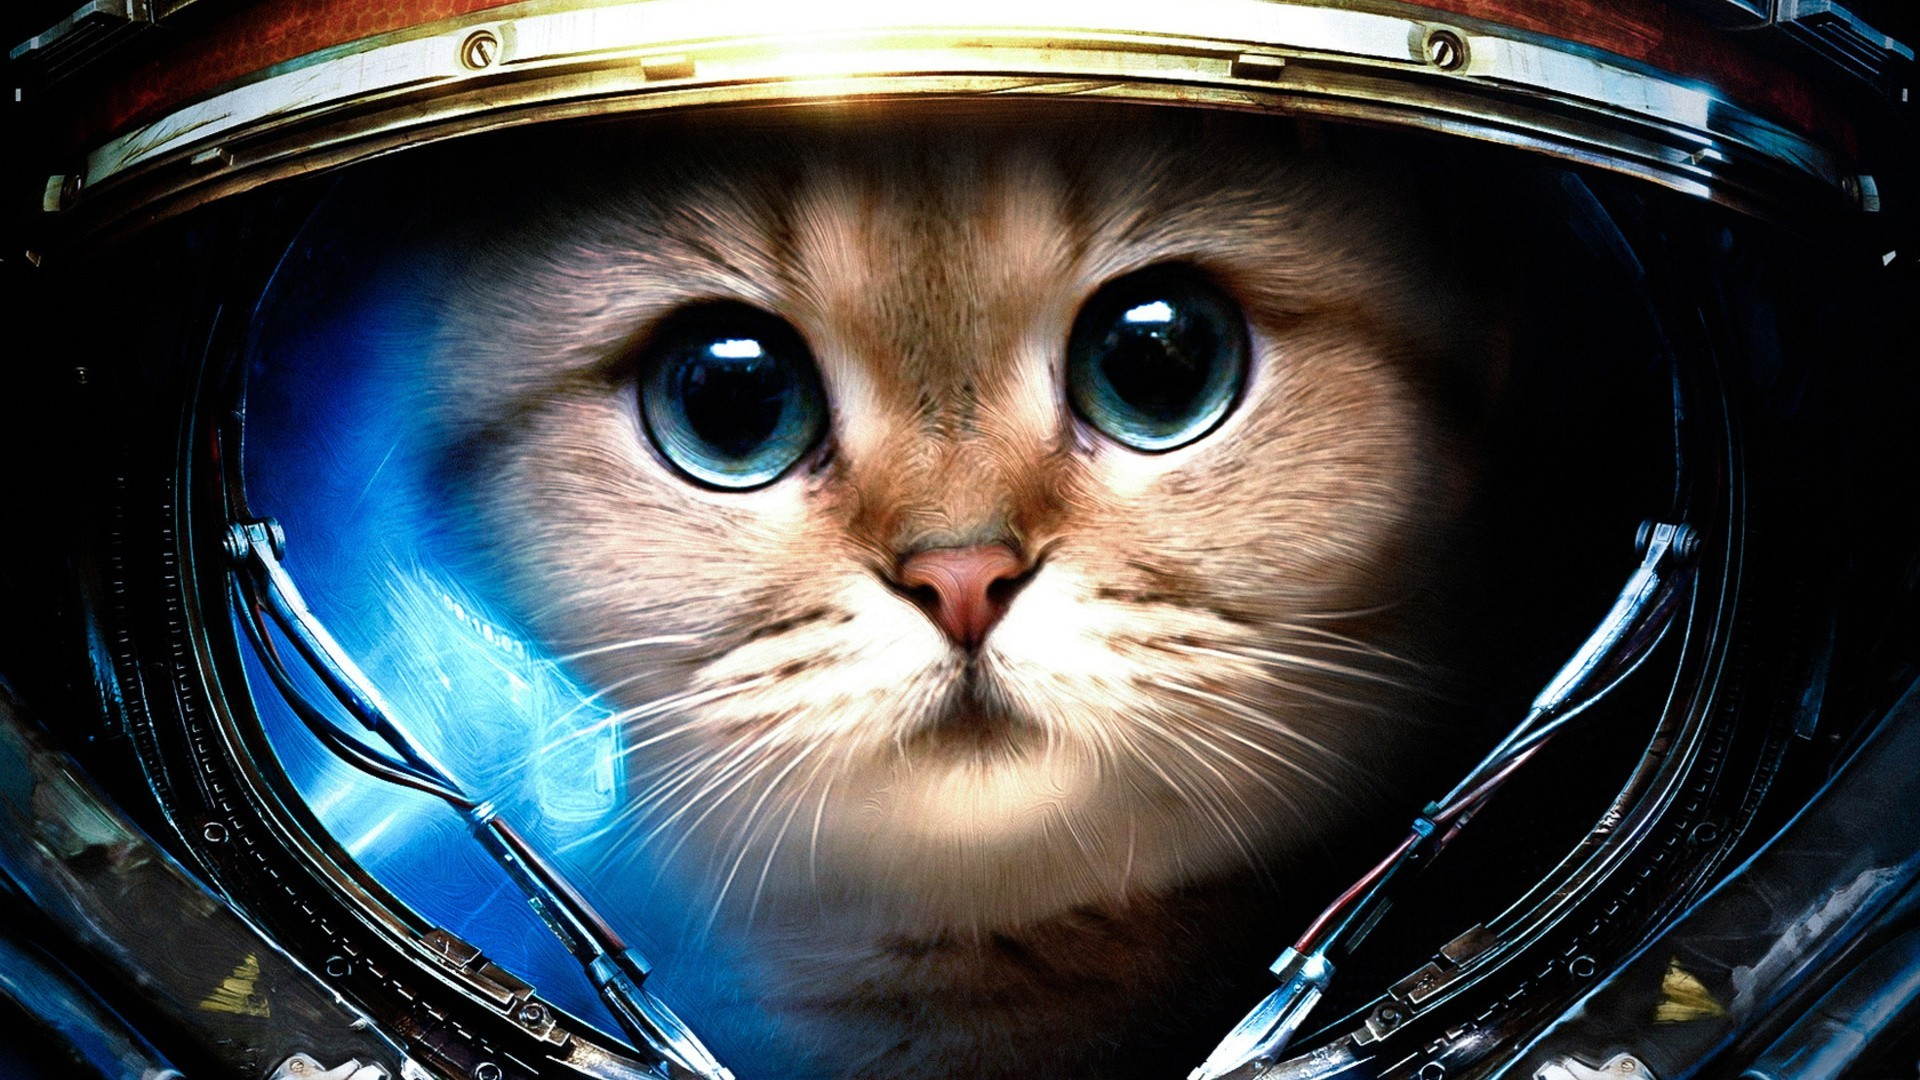 General 1920x1080 Starcraft II StarCraft James Raynor cats astronaut space